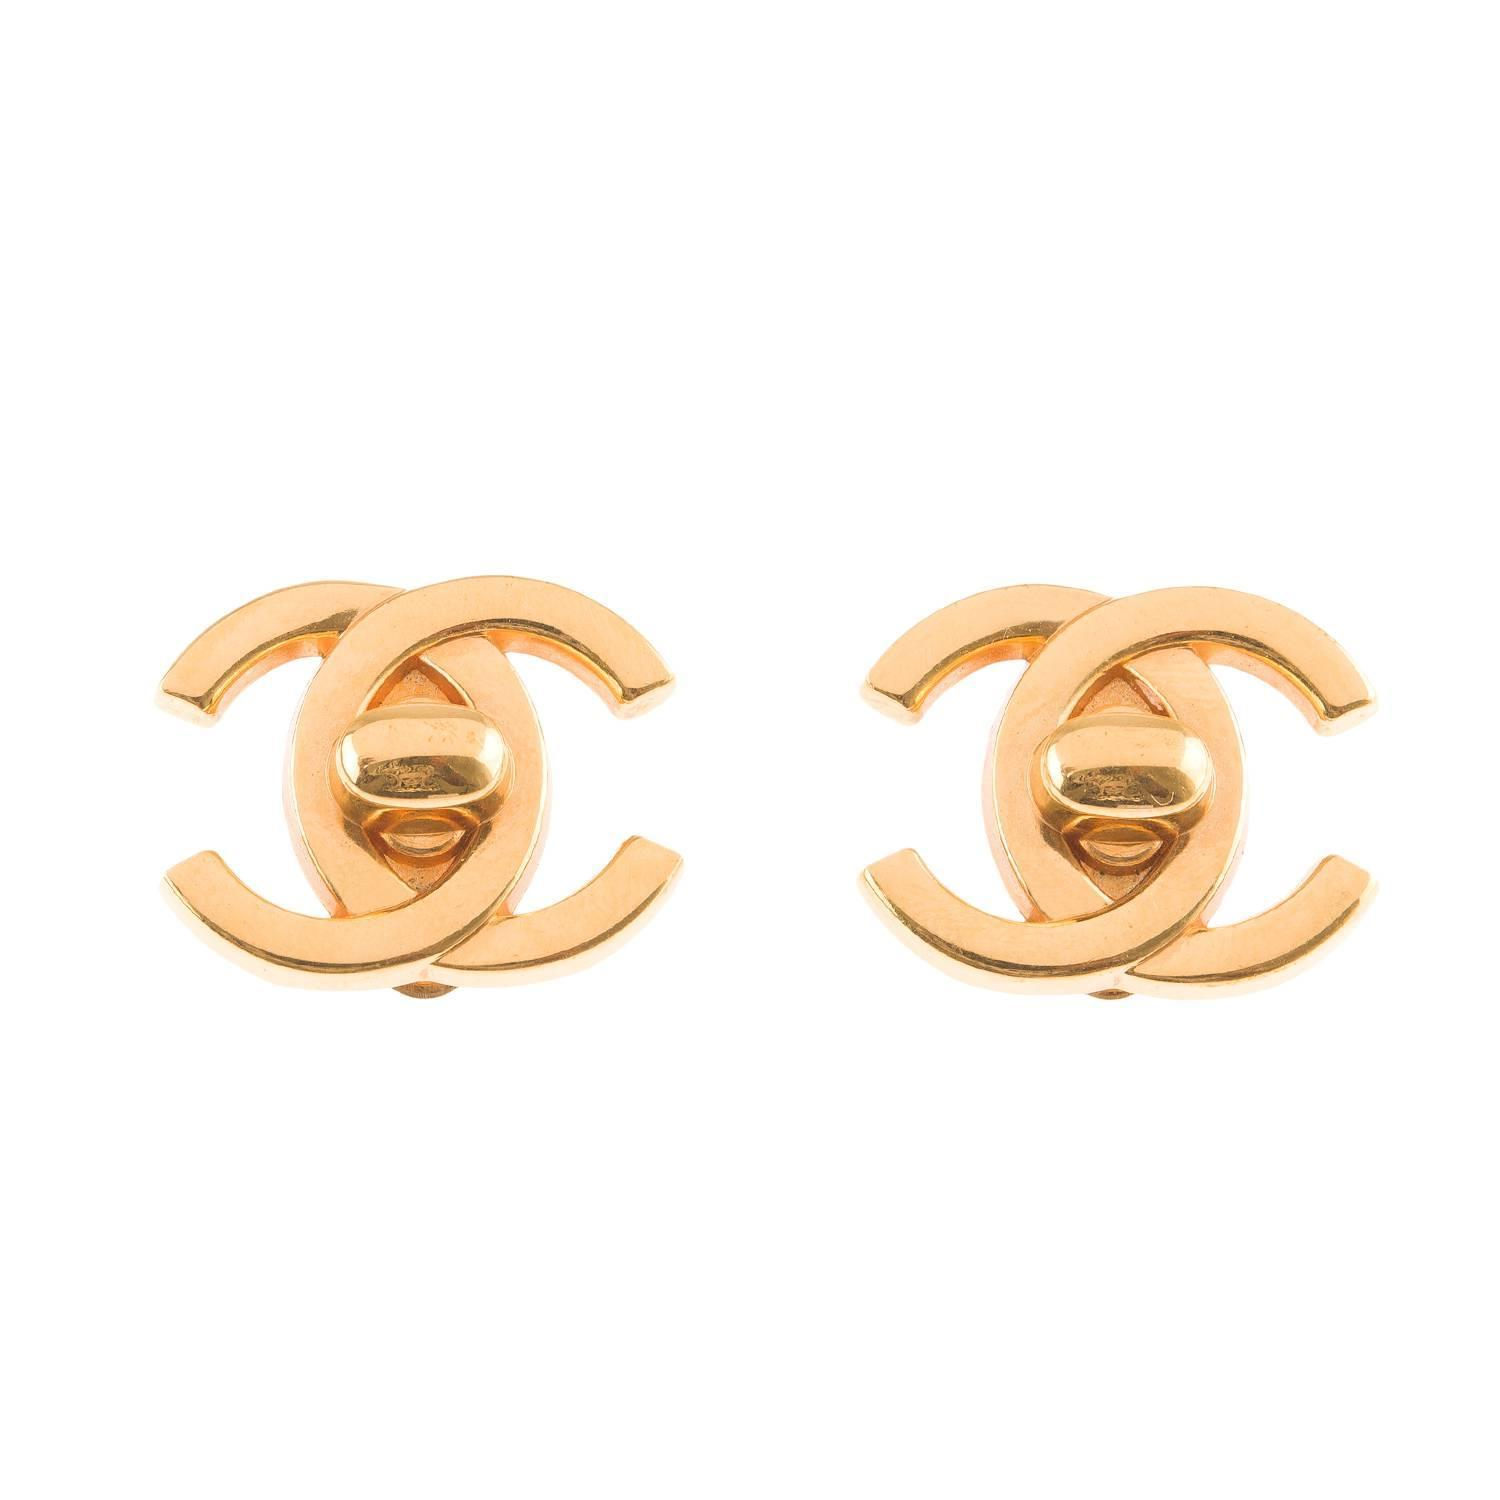 chanel vintage cc logo turnlock earrings for sale at 1stdibs